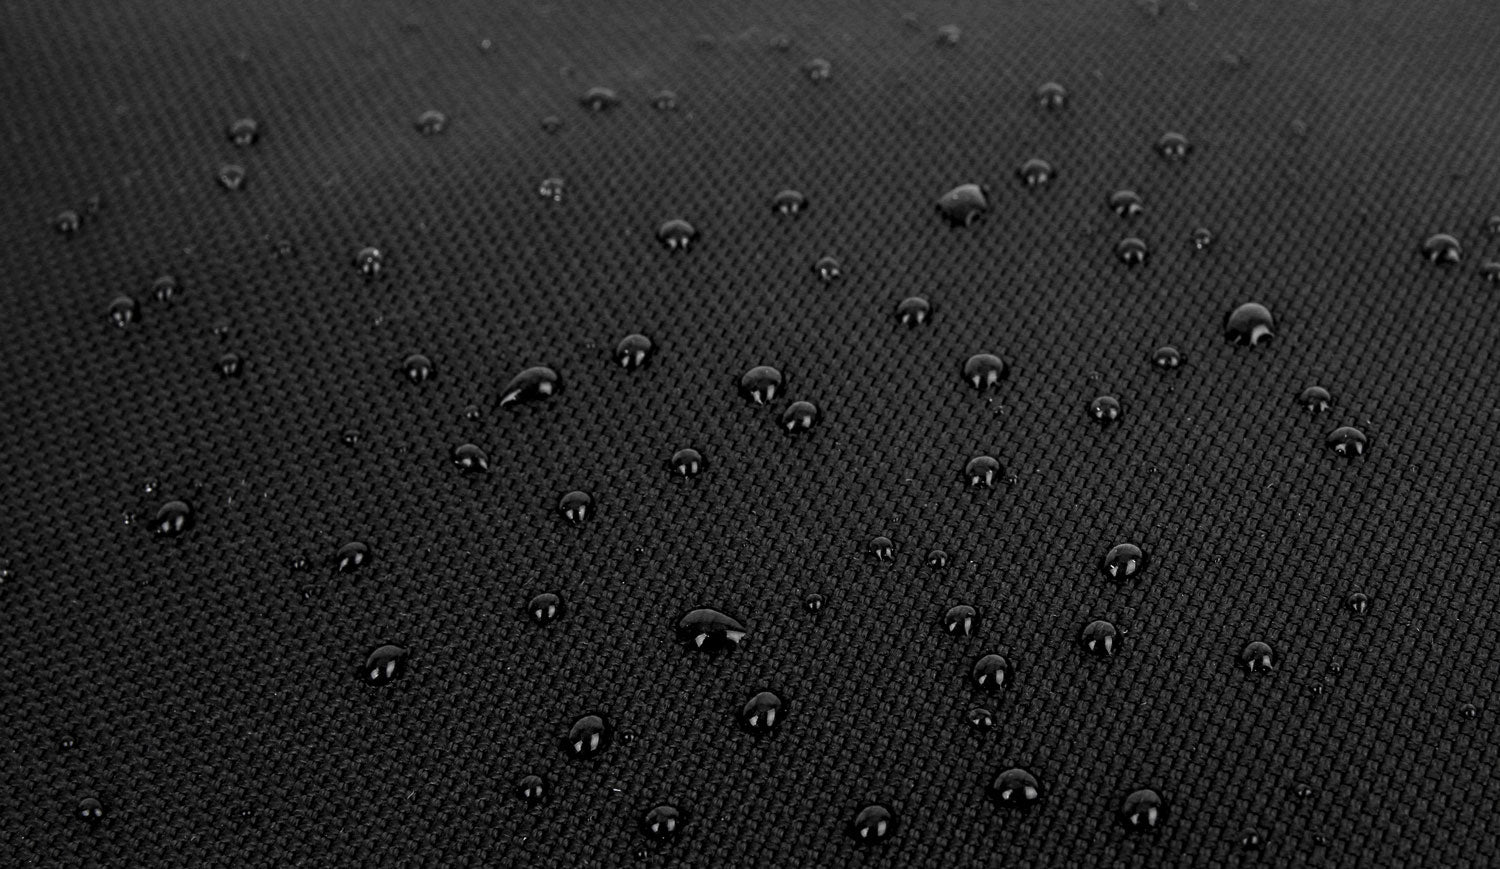 ANTI-MICROBIAL, WATER REPELLENT & LIGHTWEIGHT DURACELTEX FABRIC